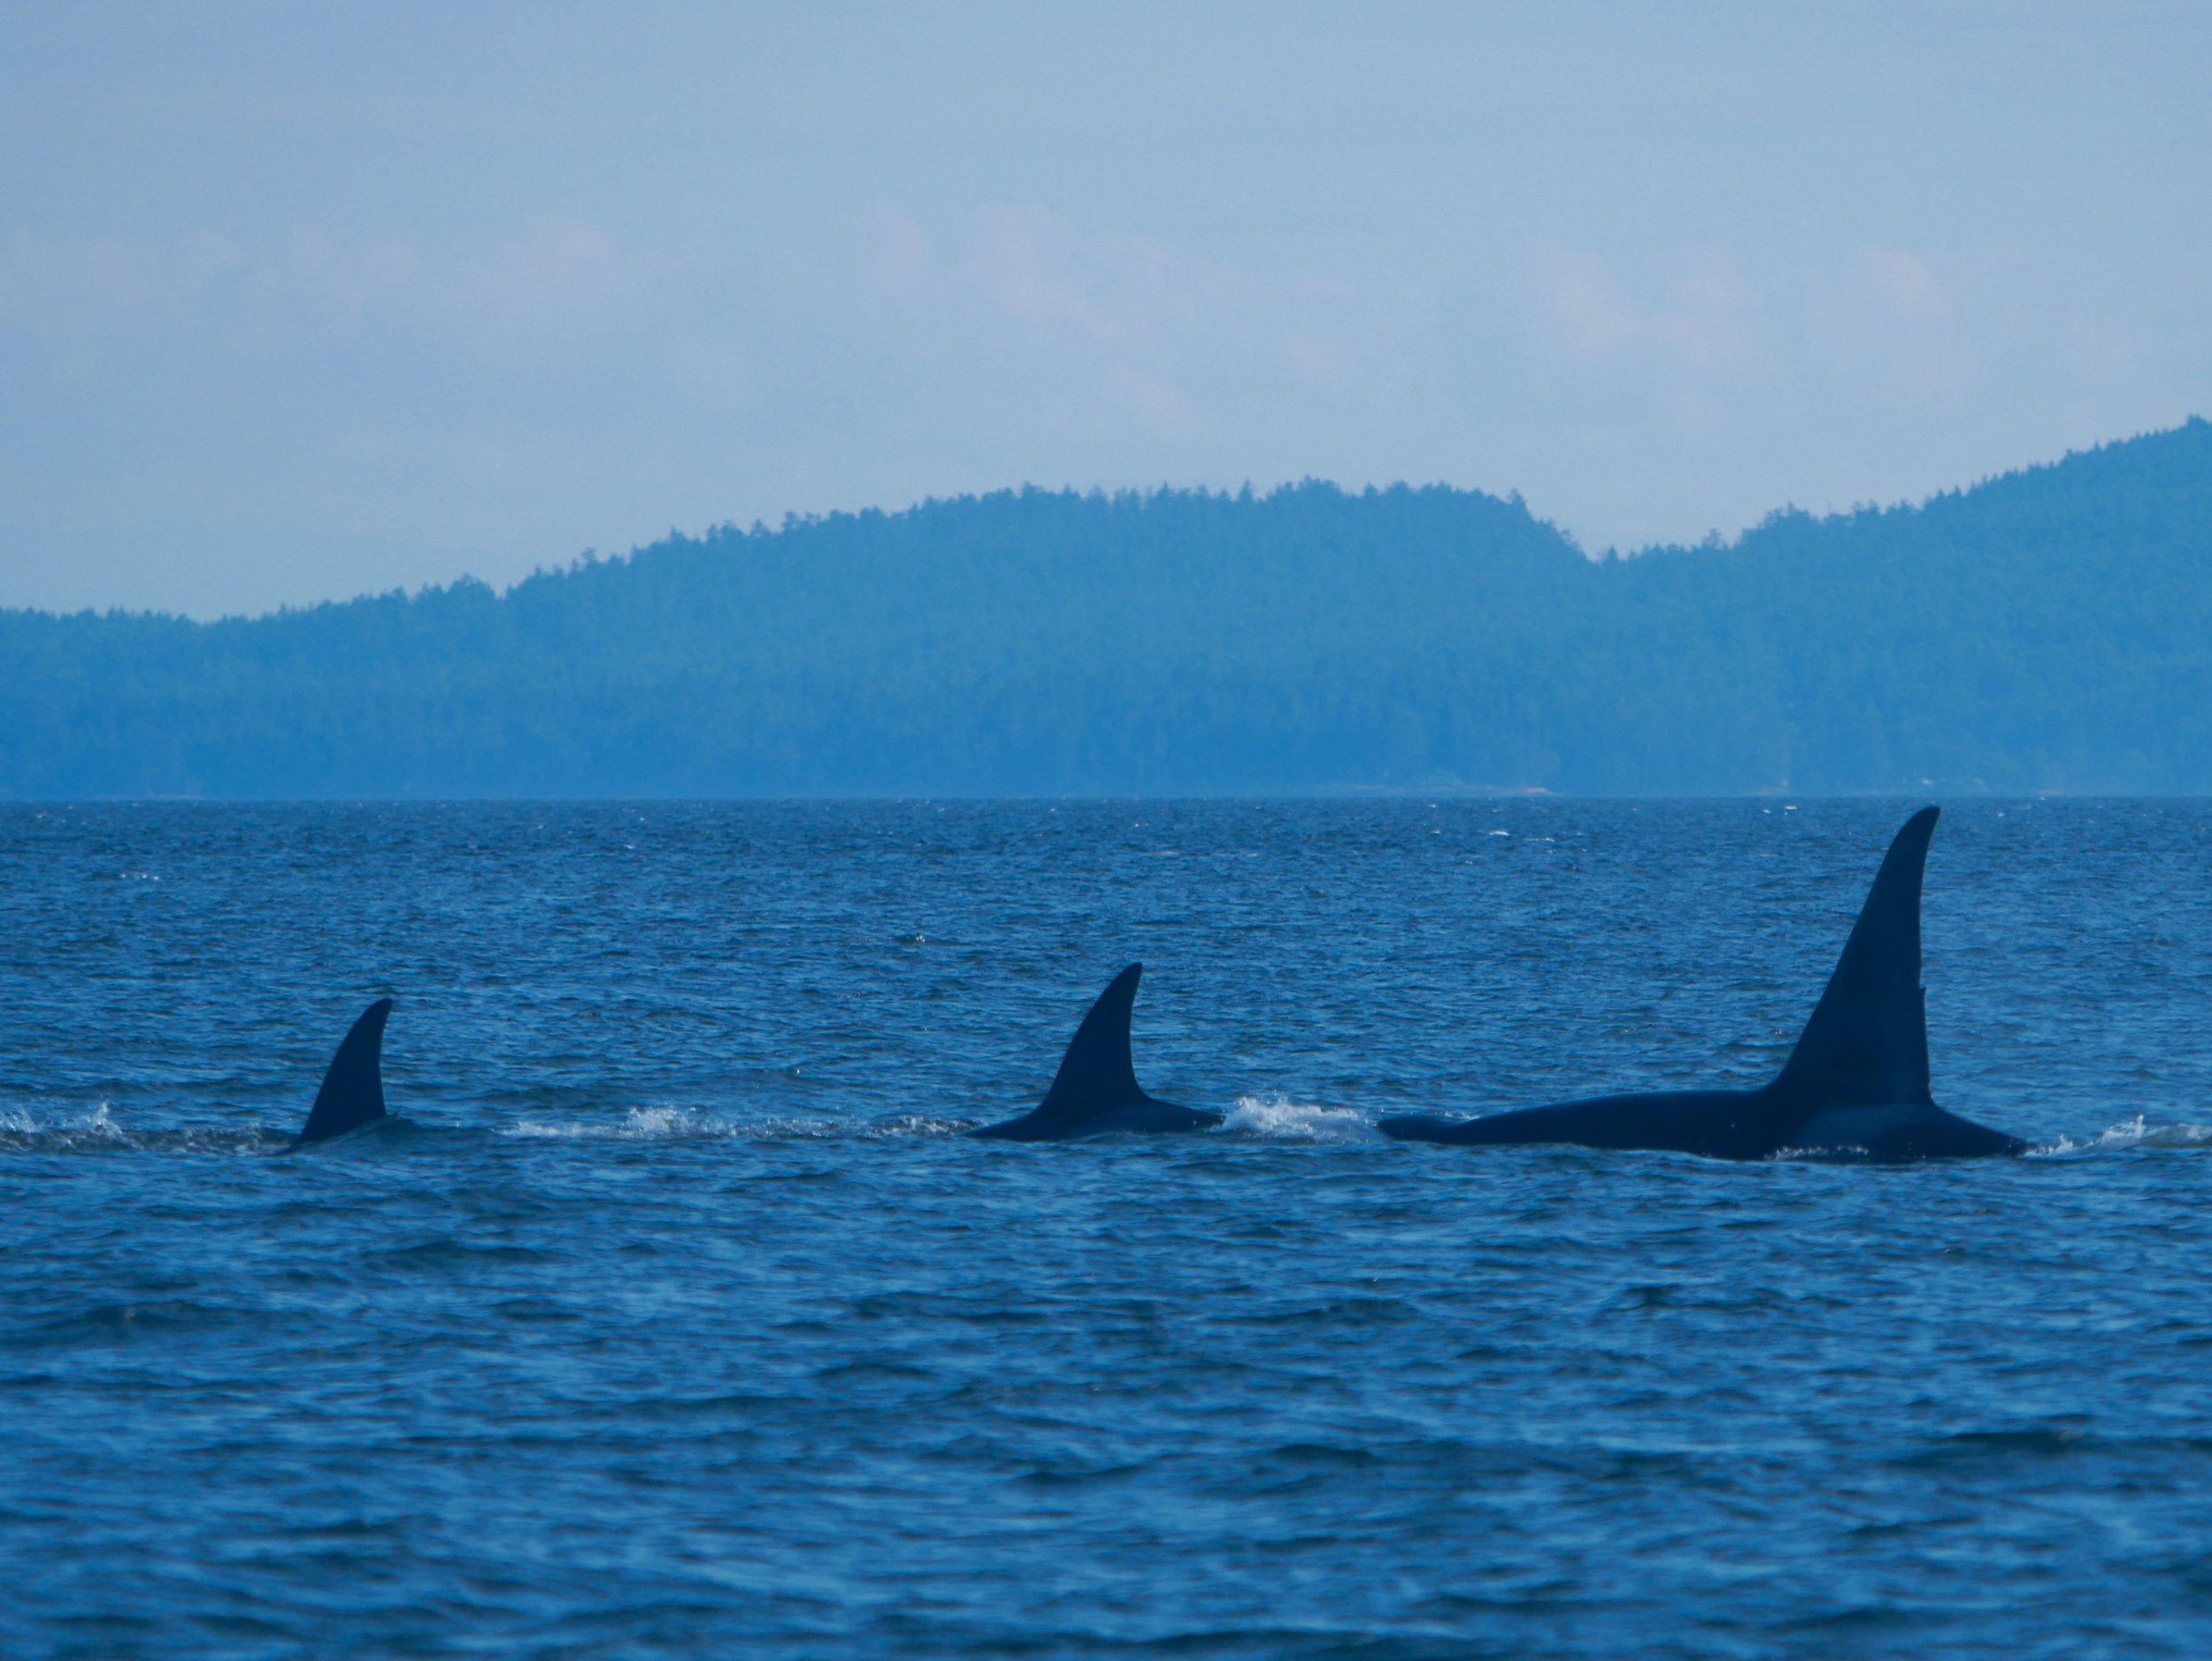 You can really see the size difference in dorsal fins as the orcas surface at the same time. Photo by Rodrigo Menezes.